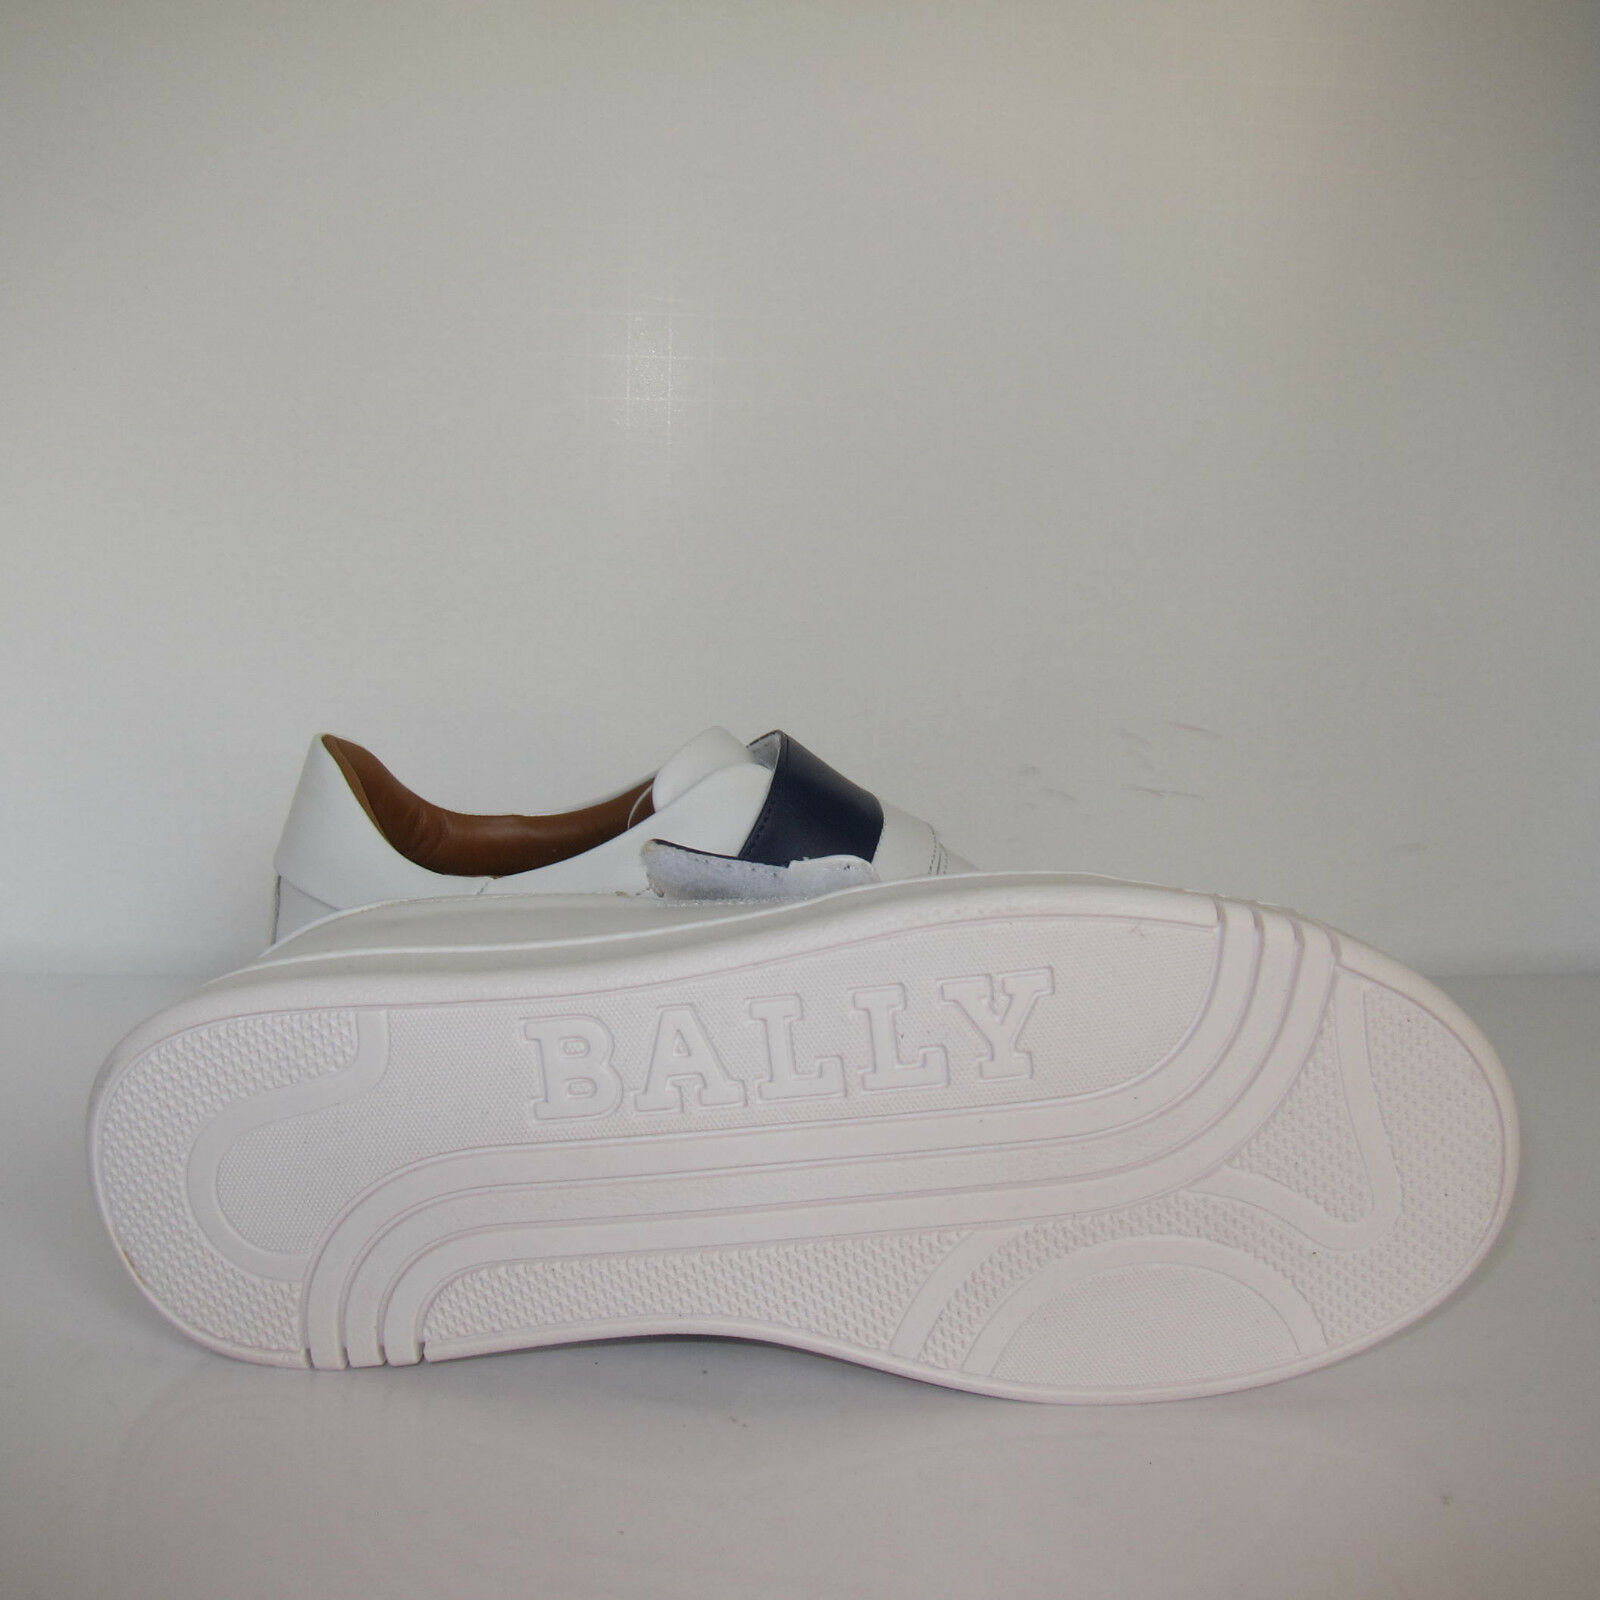 C-1644140 New  Bally Willet White Calf Plain  New Shoes Size US 7 D 849658